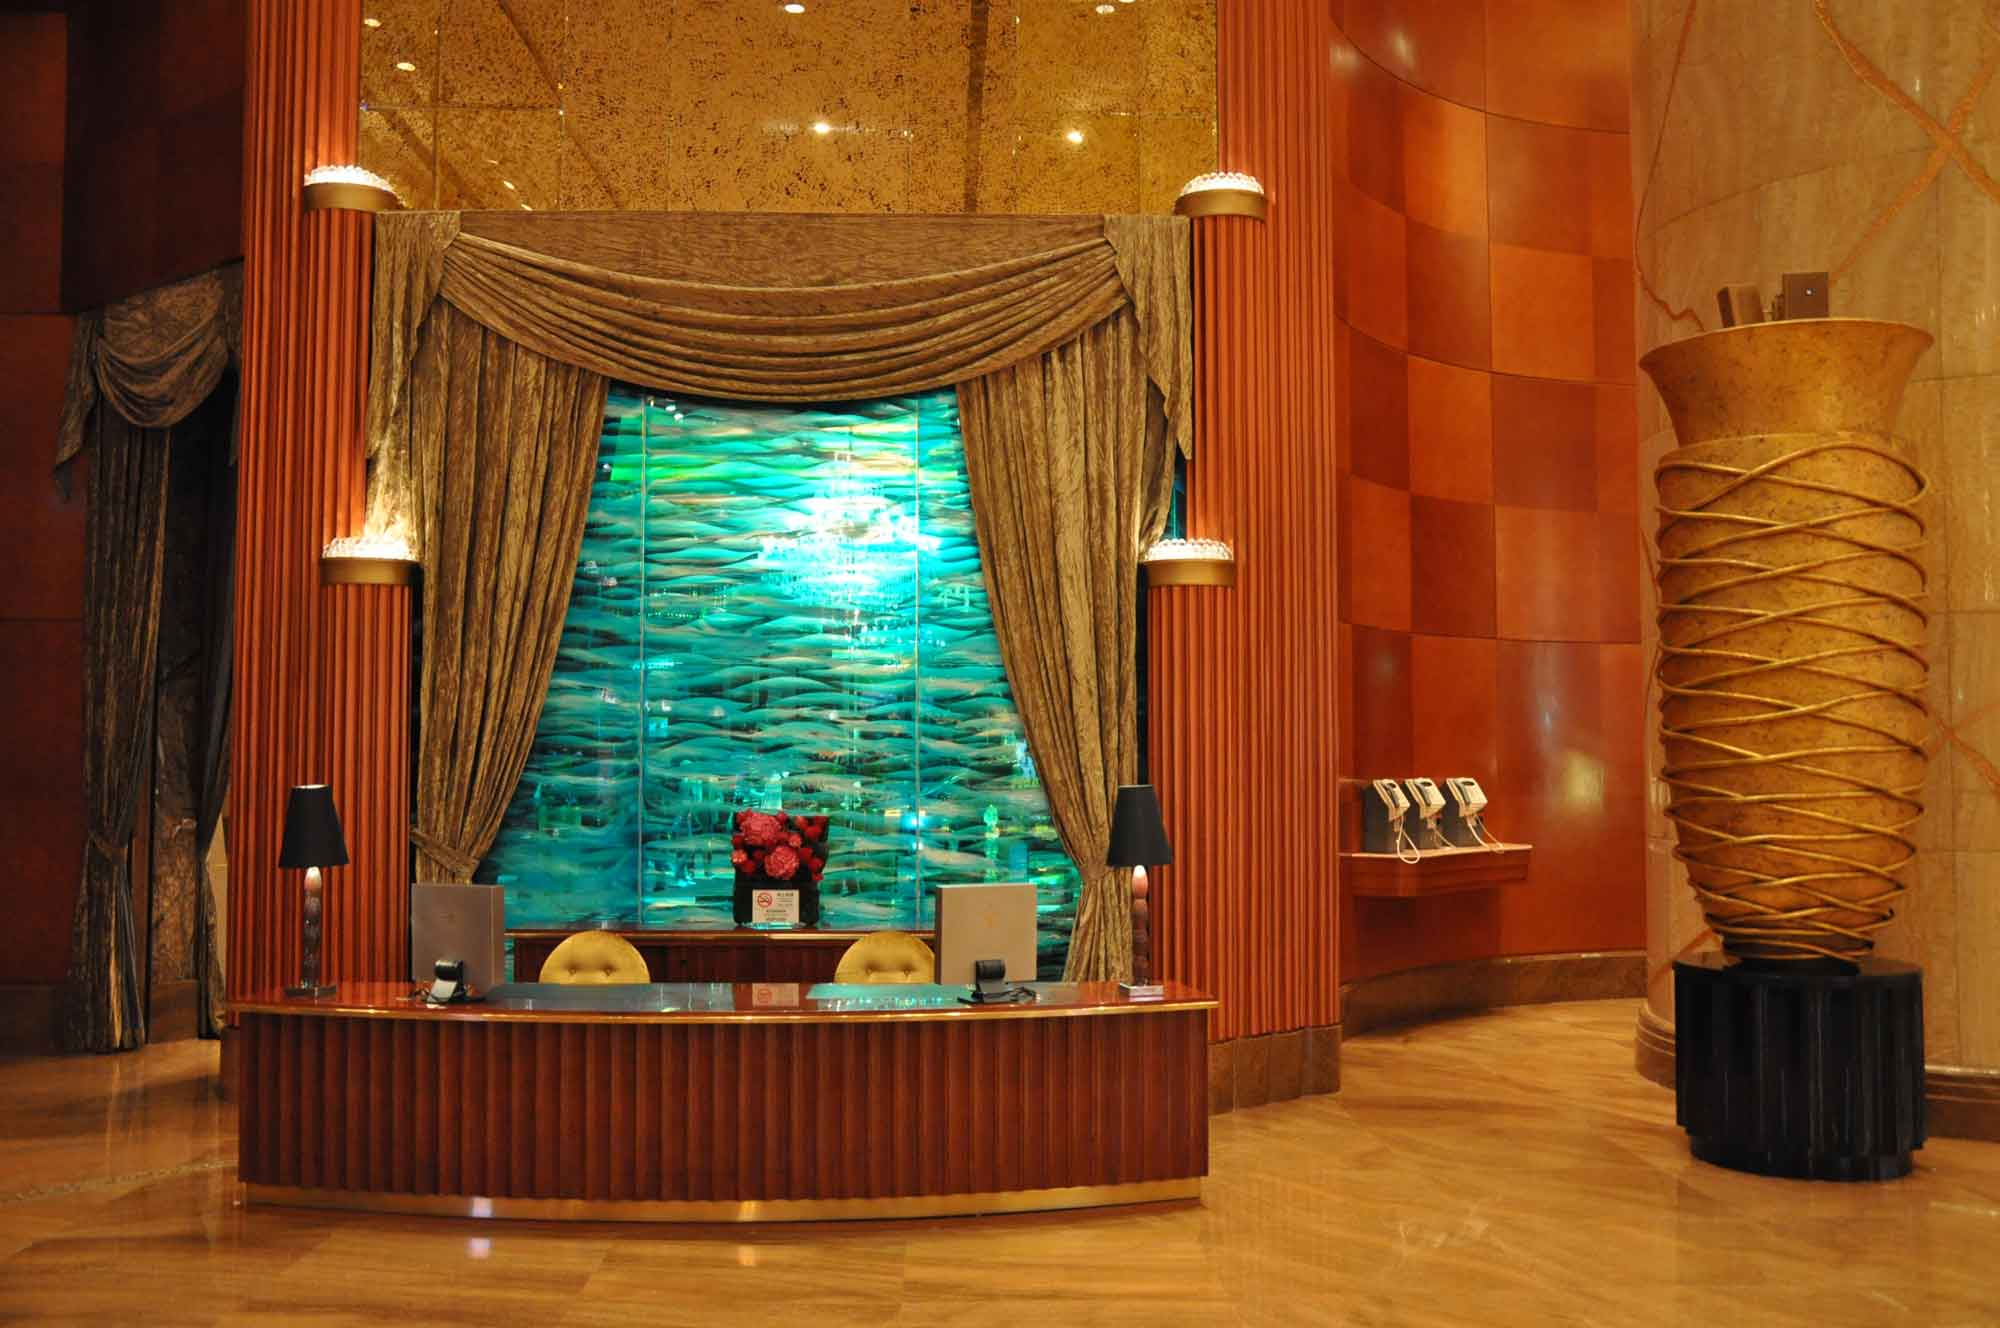 Starworld Macau concierge